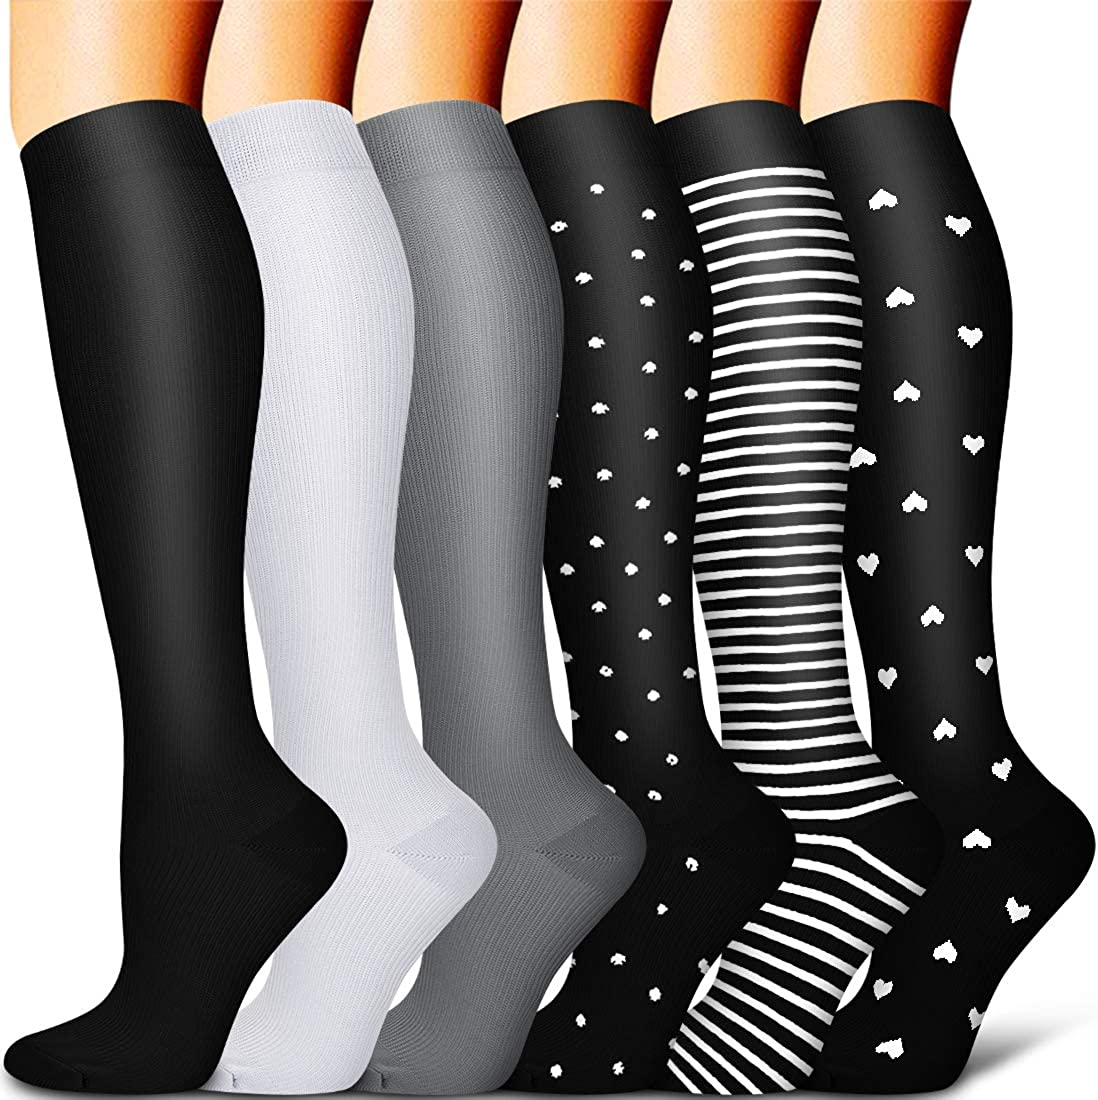 Compression Socks for Women and Men Best for Running, Athletic Sports, Travel